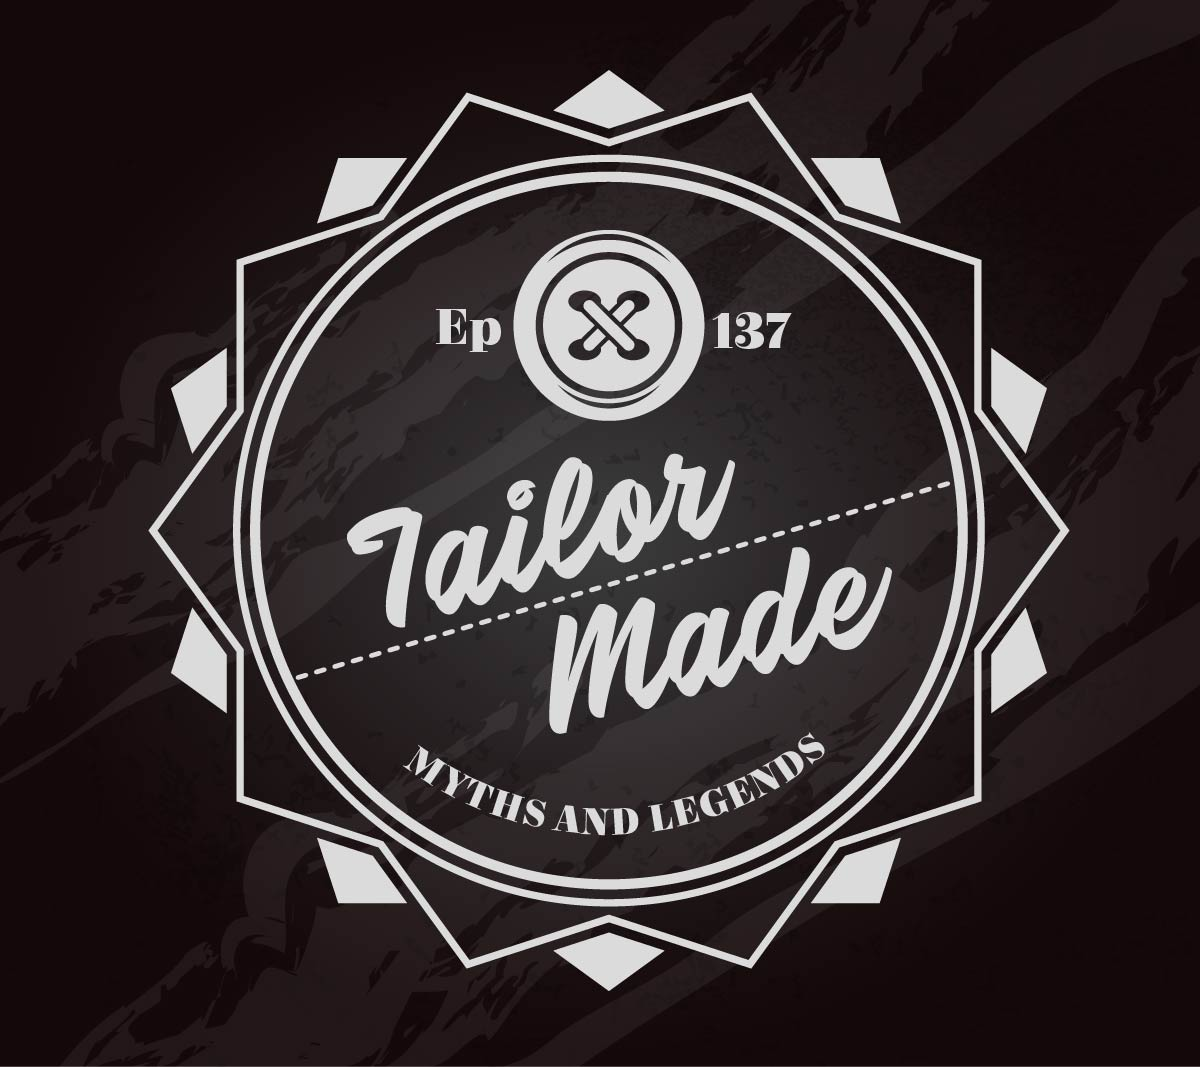 137-Italian folklore: Tailor-made – Myths and Legends